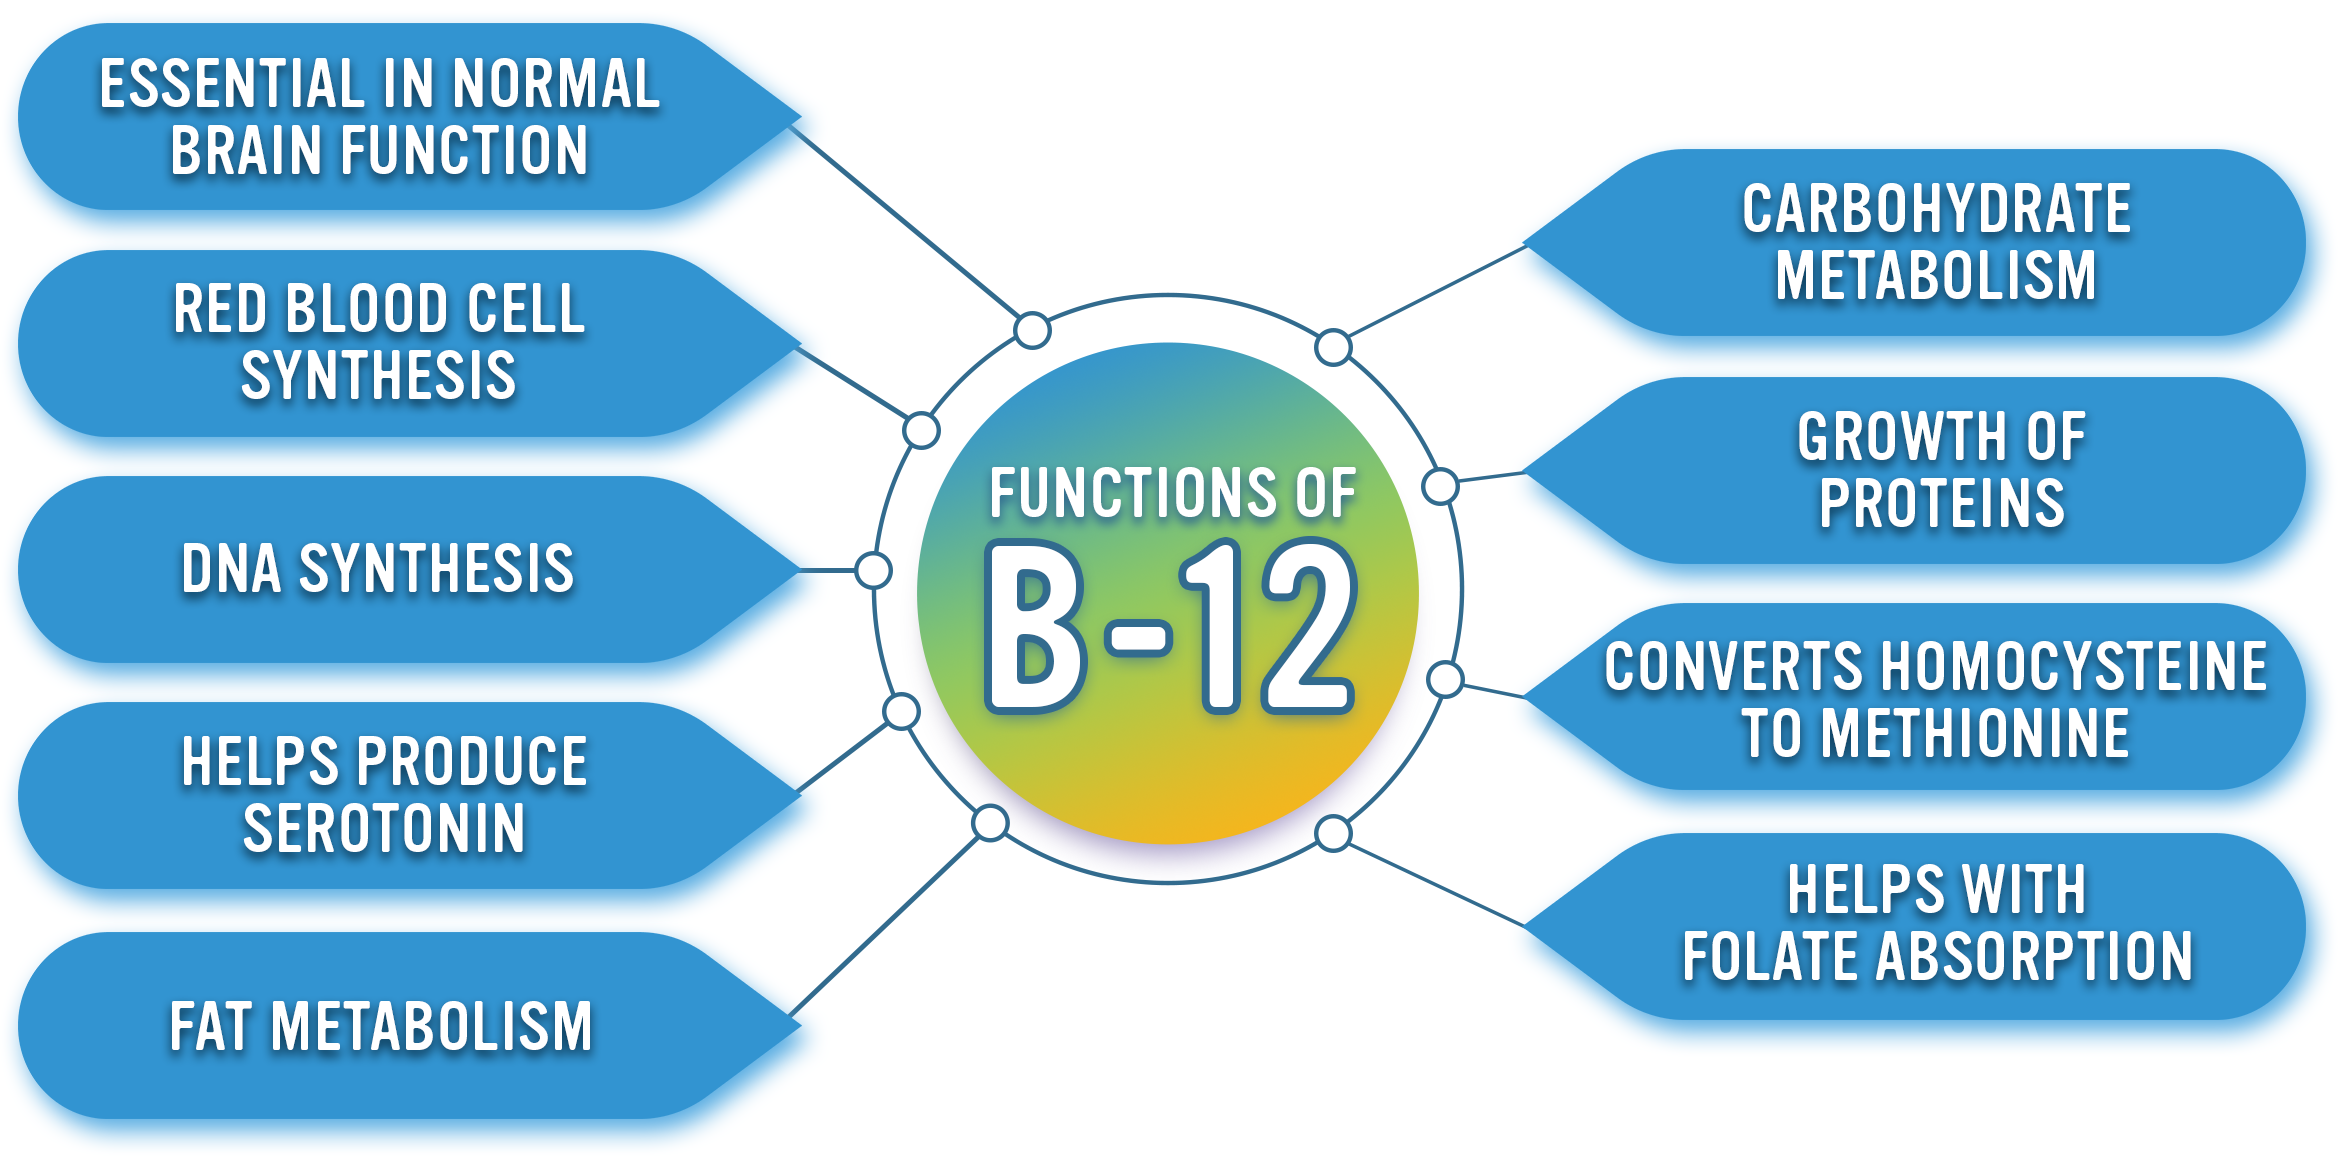 Functions of Vitamin B-12